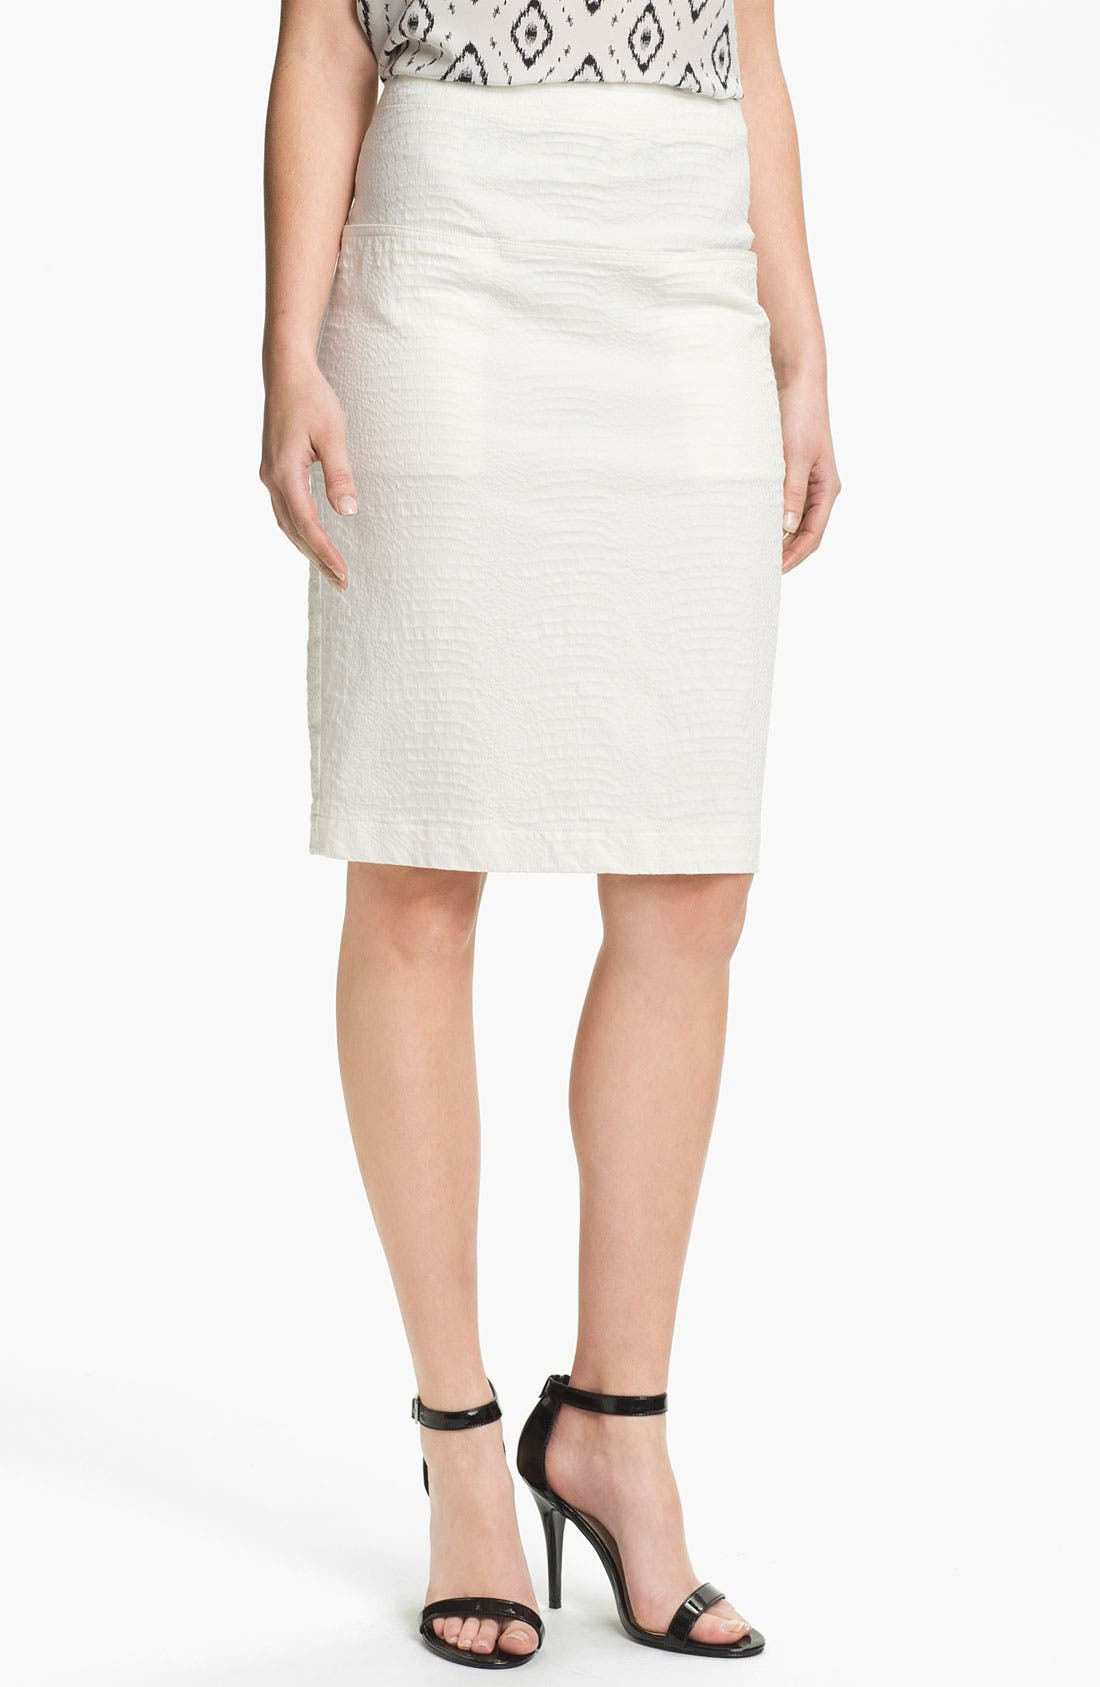 Alternate Image 1 Selected - Theory 'Clea' Pencil Skirt